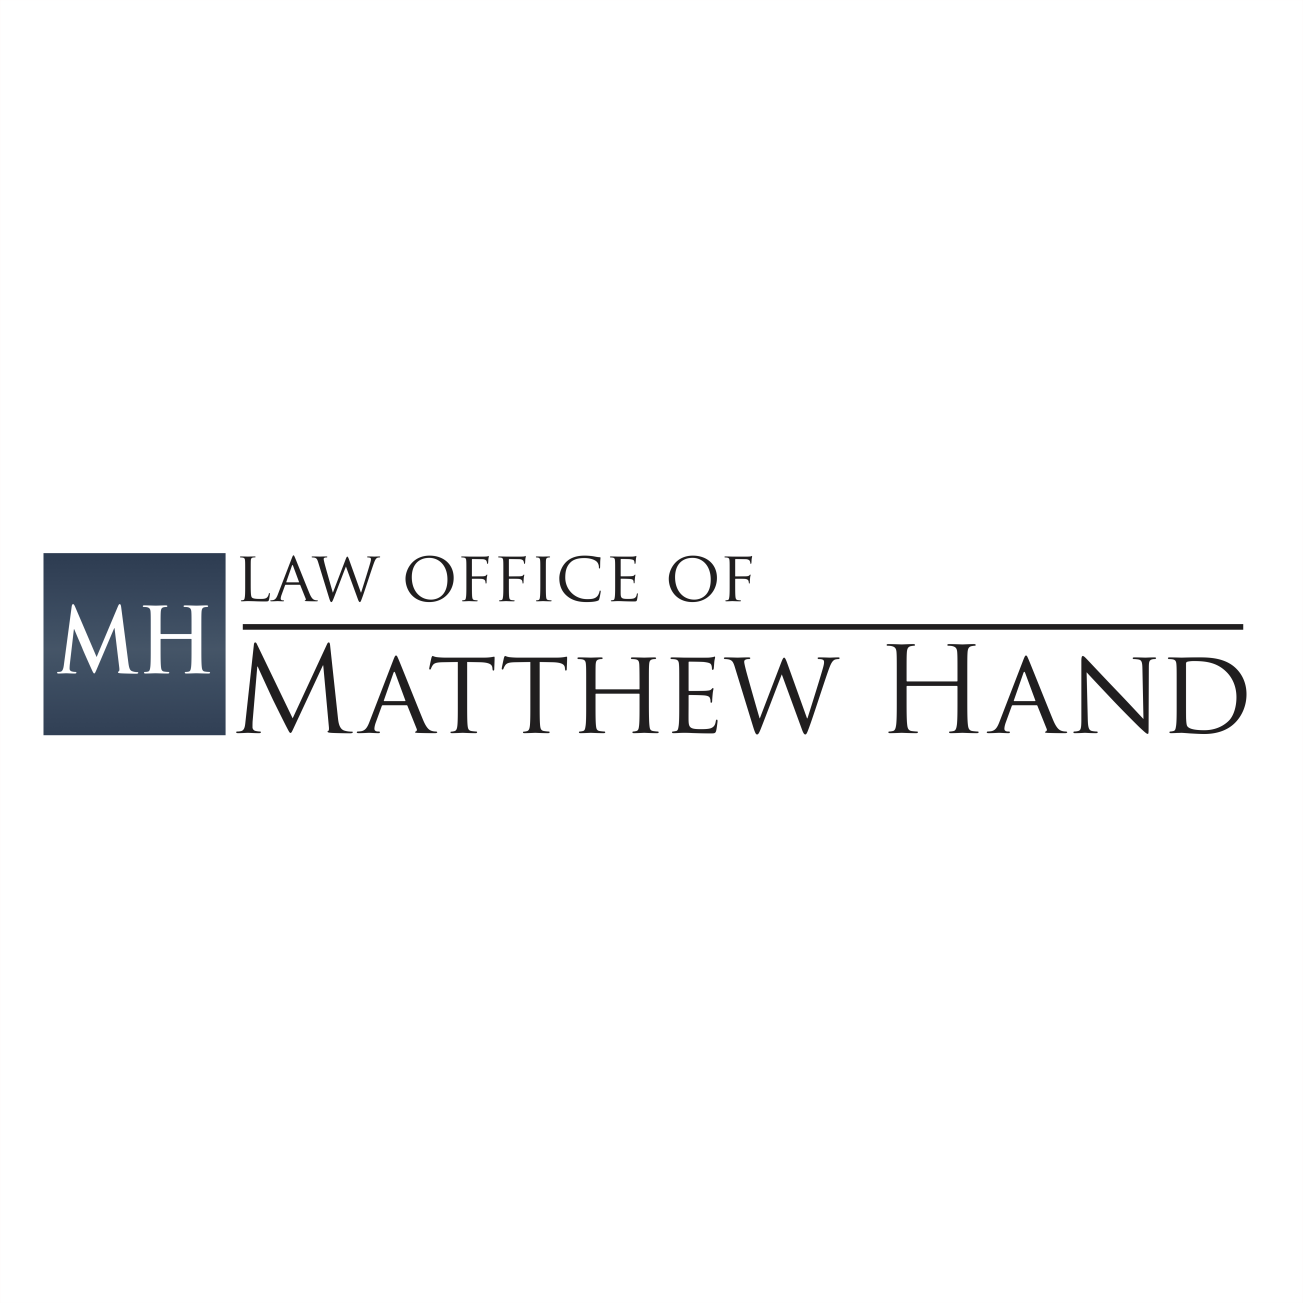 Law Office of Matthew Hand - Denver, CO 80218 - (303)900-8480 | ShowMeLocal.com